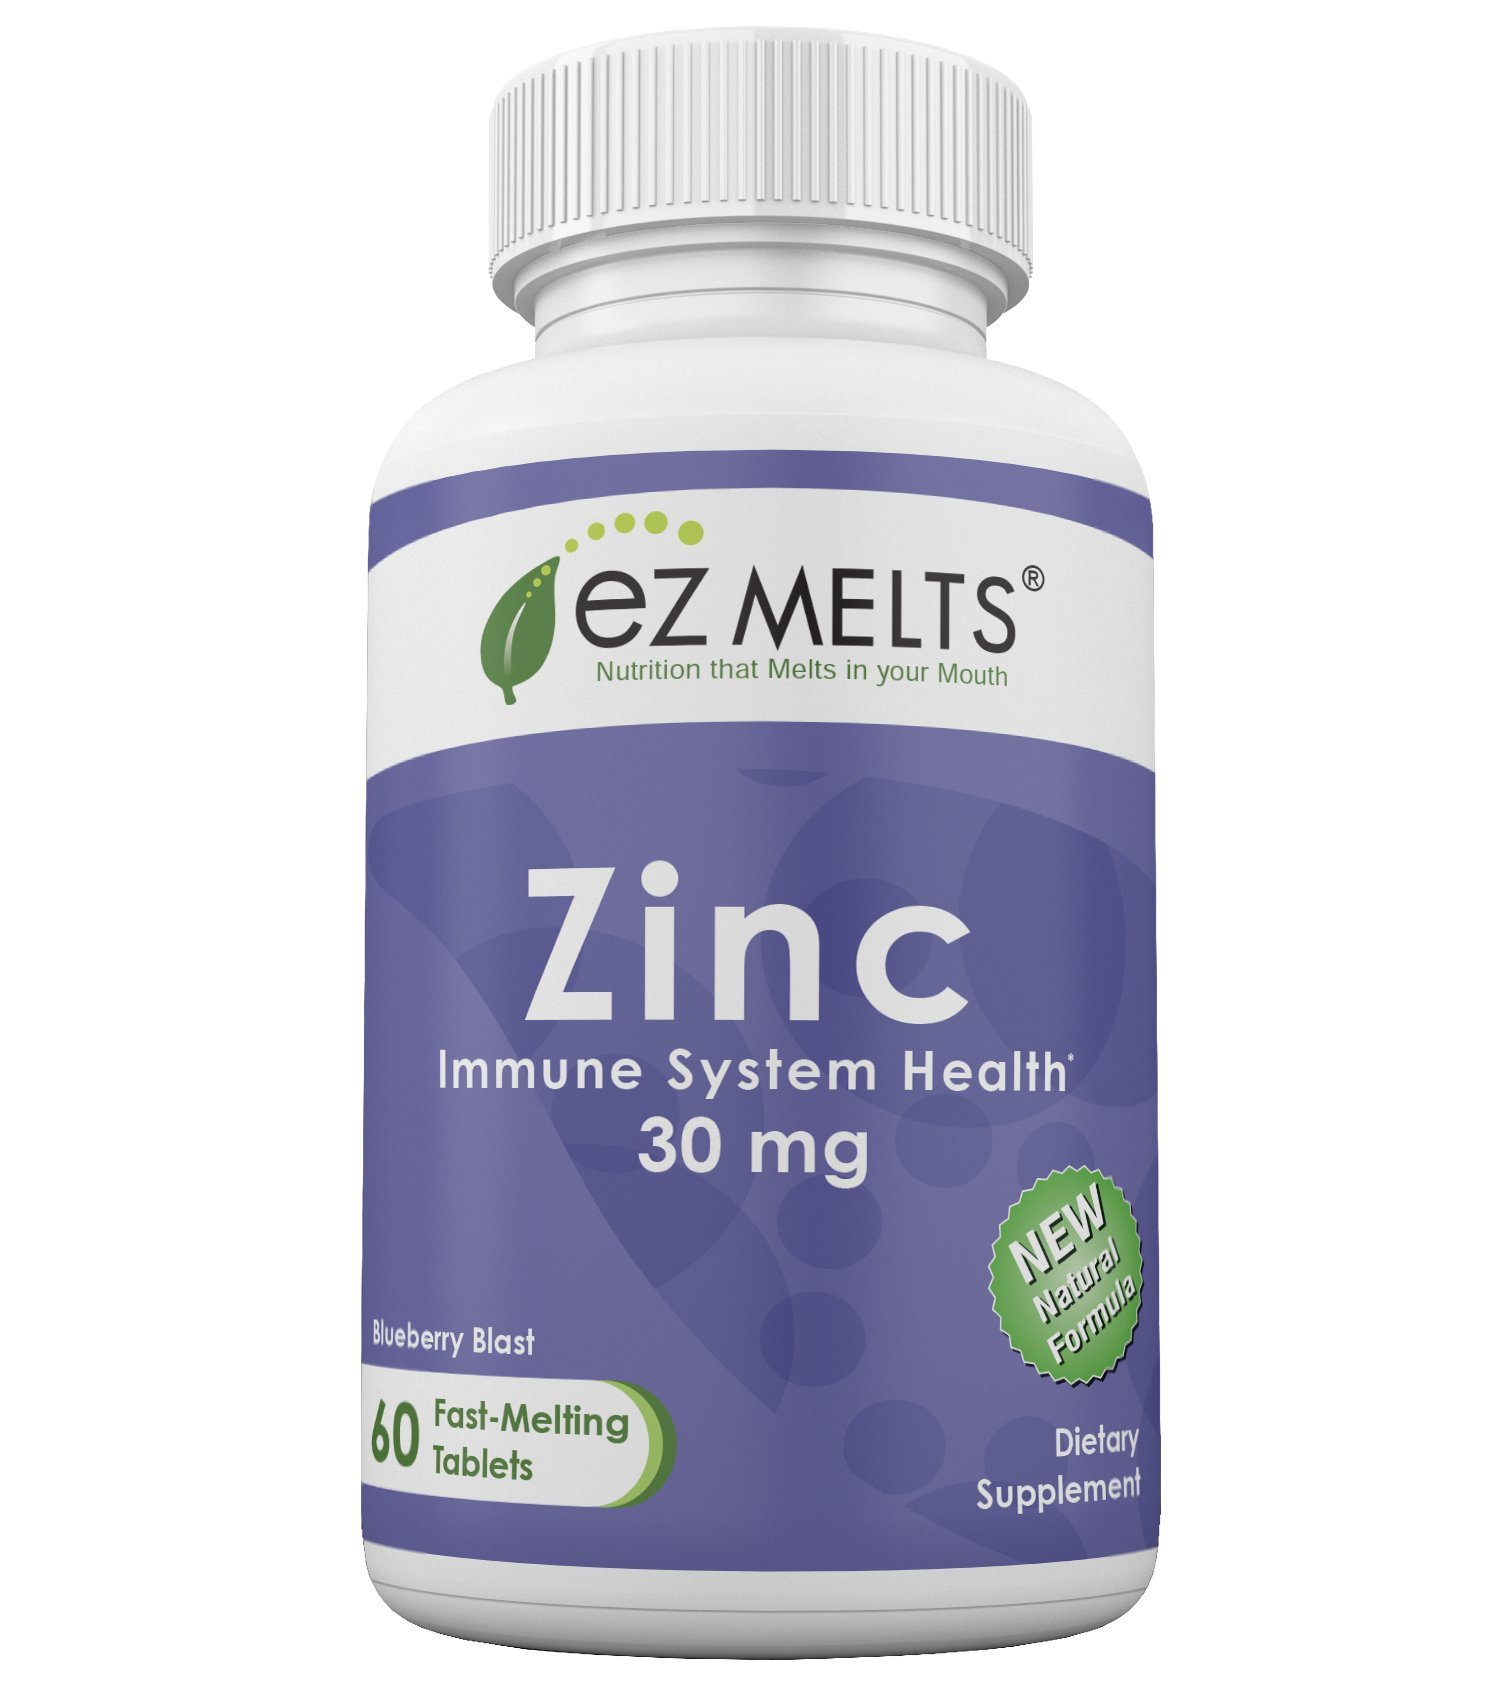 EZ Melts Zinc, 30 mg, Dissolvable Vitamins, Vegan, Zero Sugar, Natural Blueberry Flavor, 60 Fast Melting Tablets, Zinc Supplement